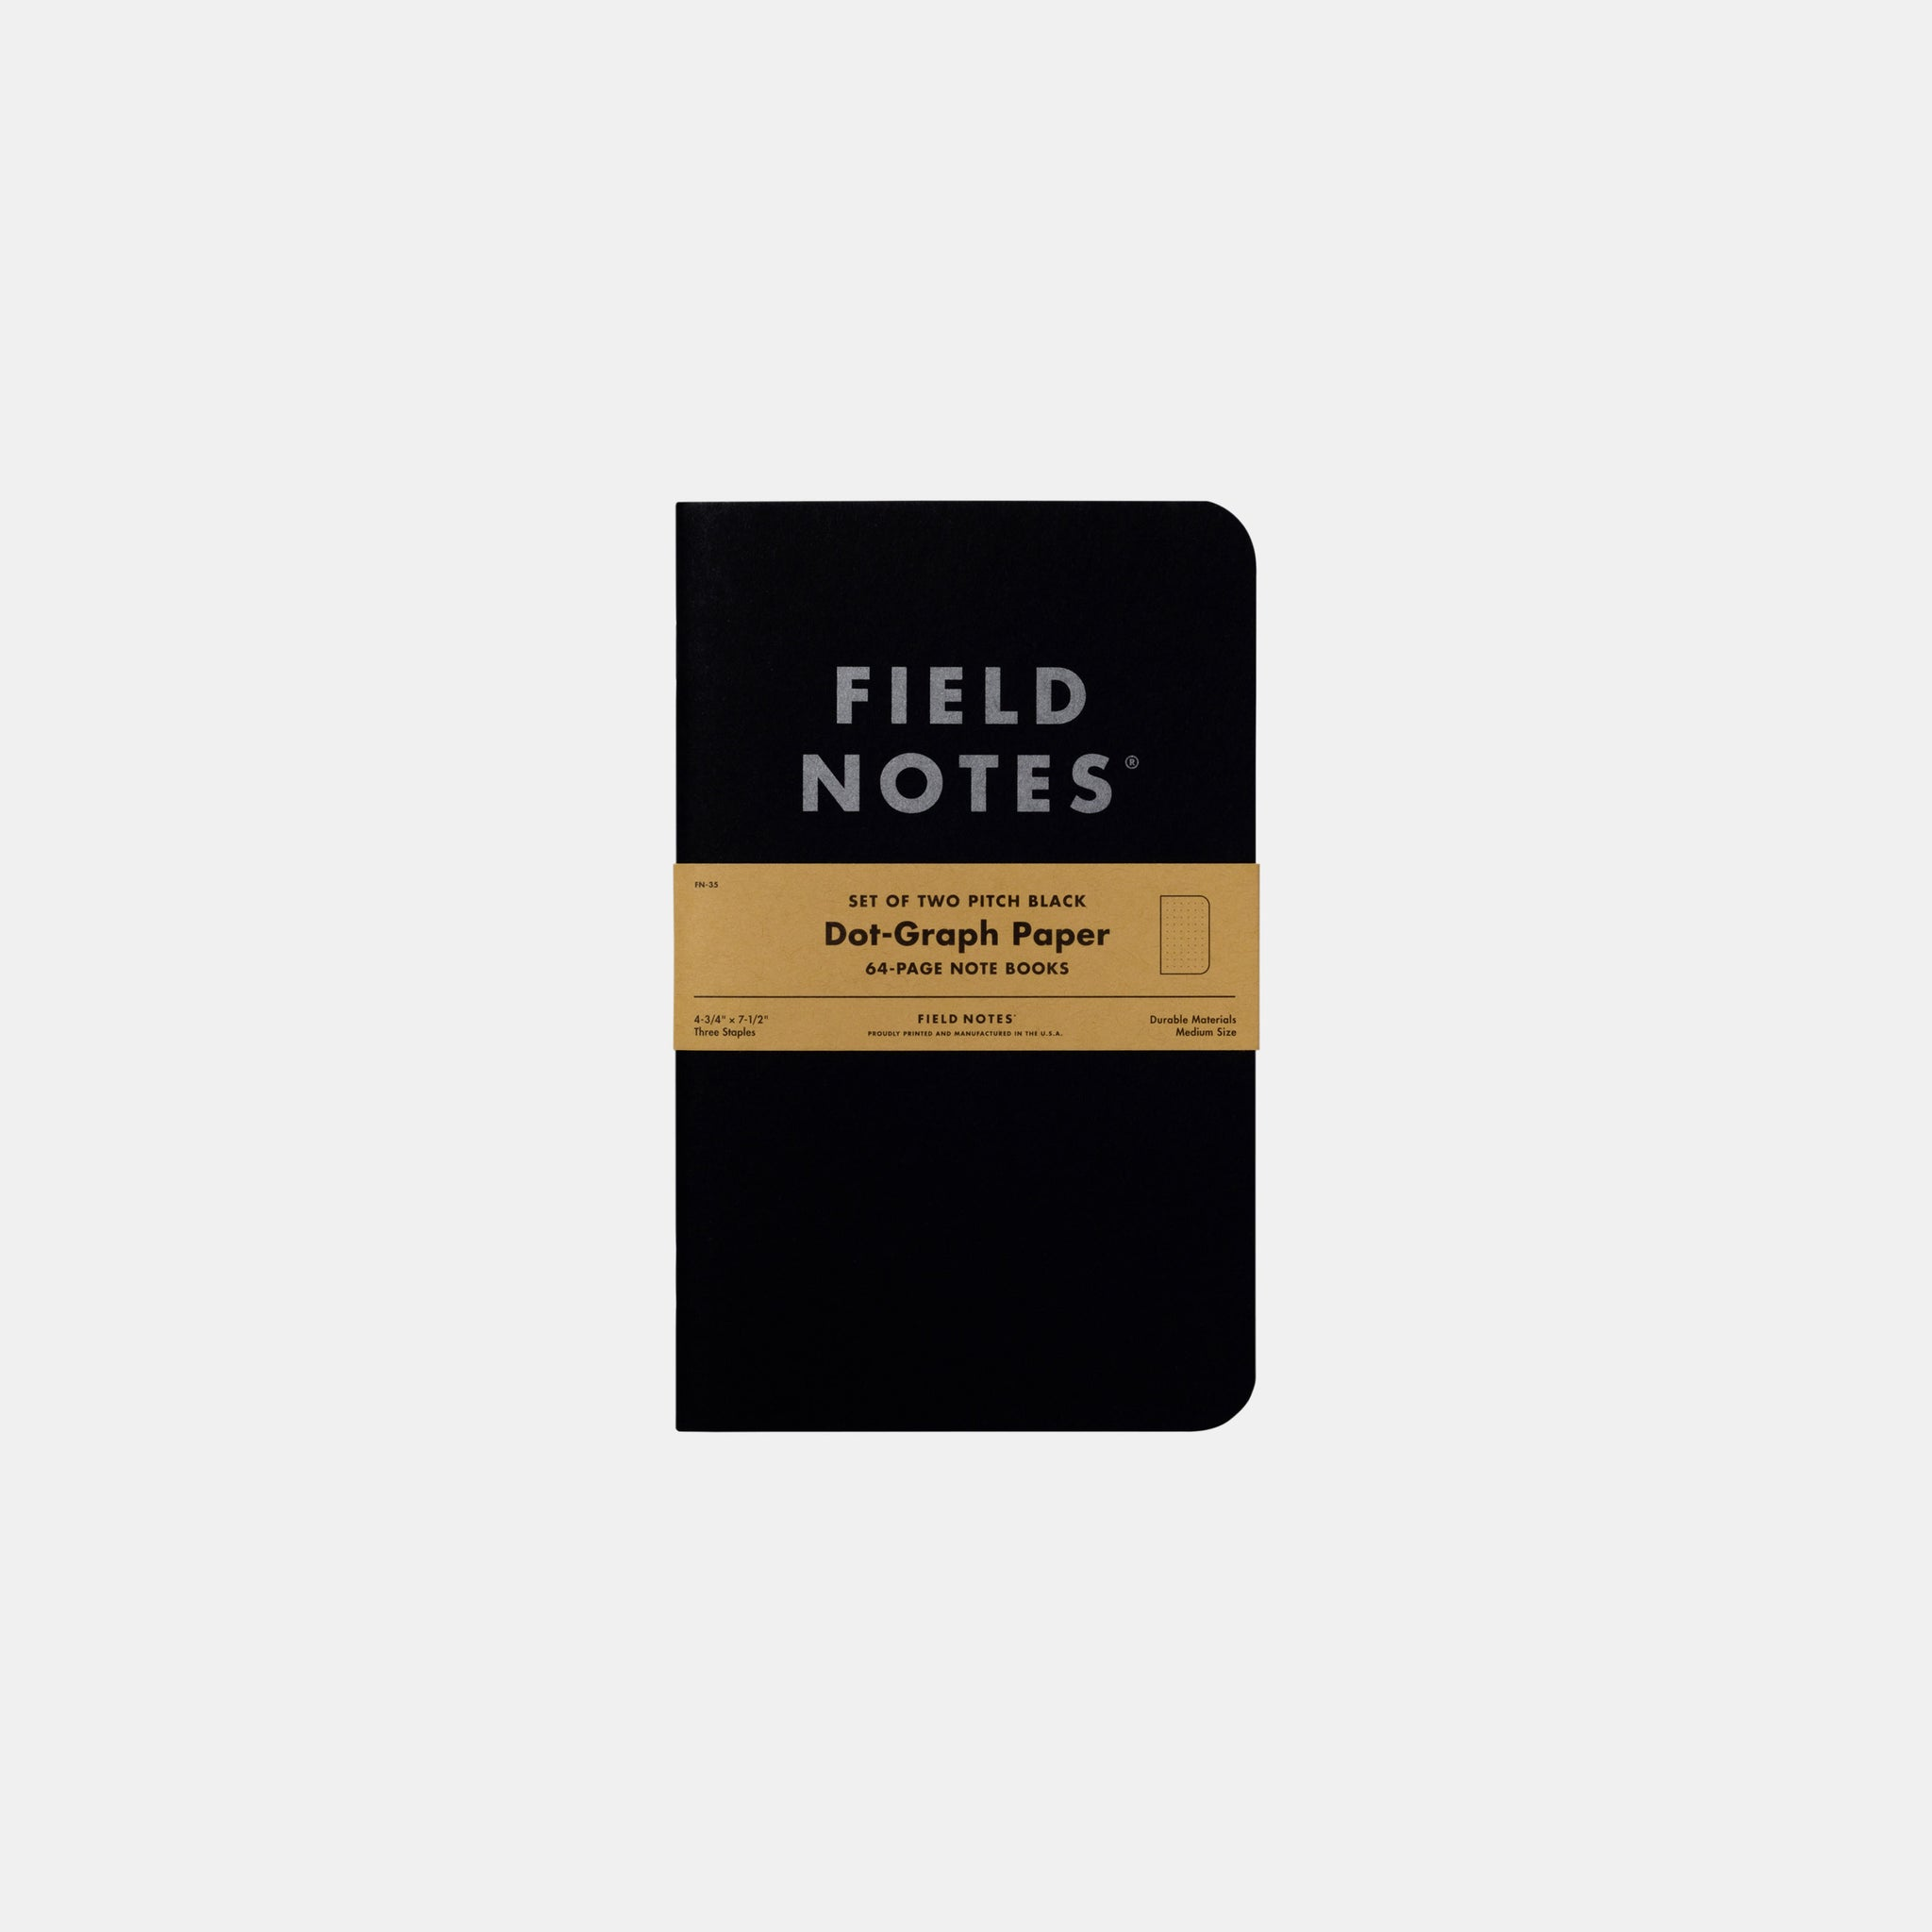 Pitch Black Notebook